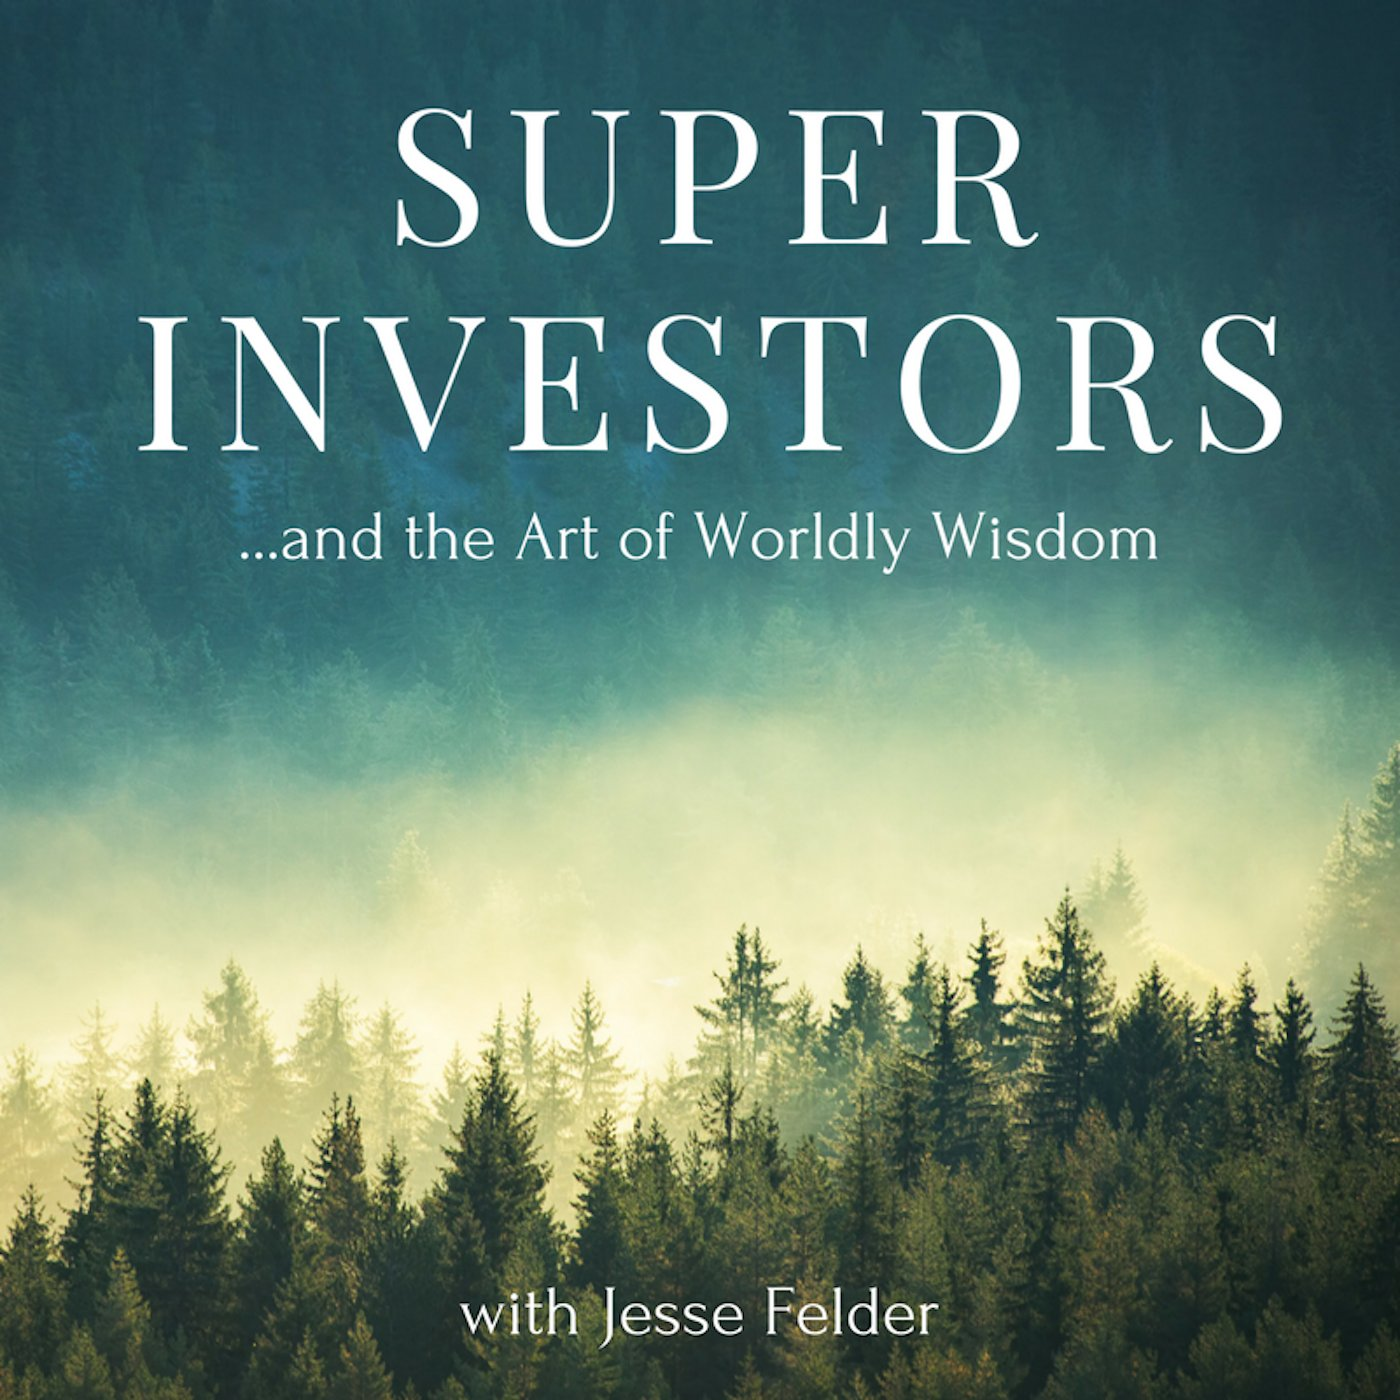 Superinvestors and the Art of Worldly Wisdom